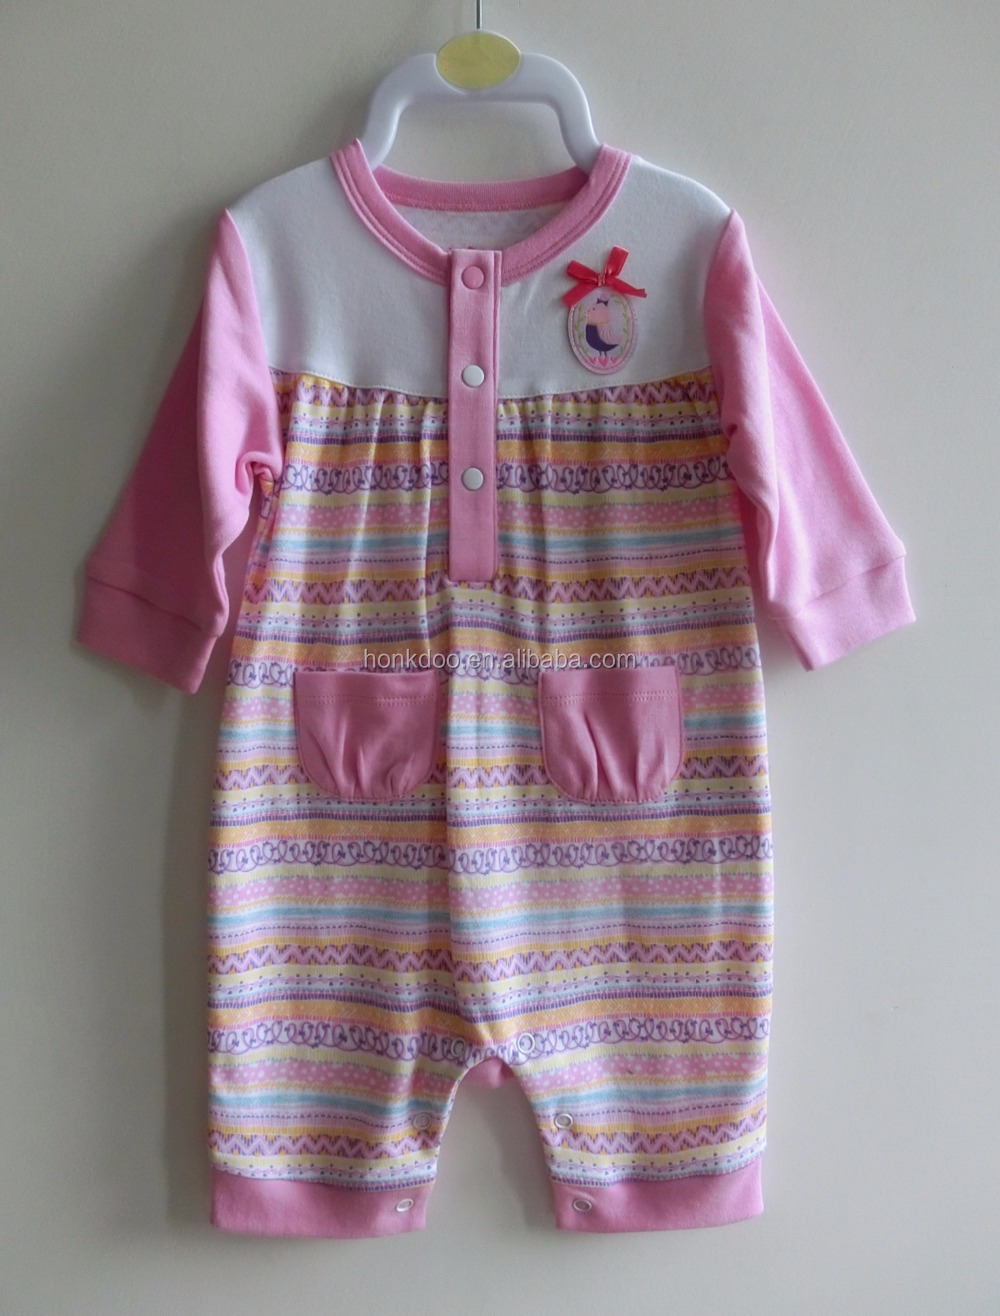 Sale romper baby knitted baby boutique girl clothing baby girl romper